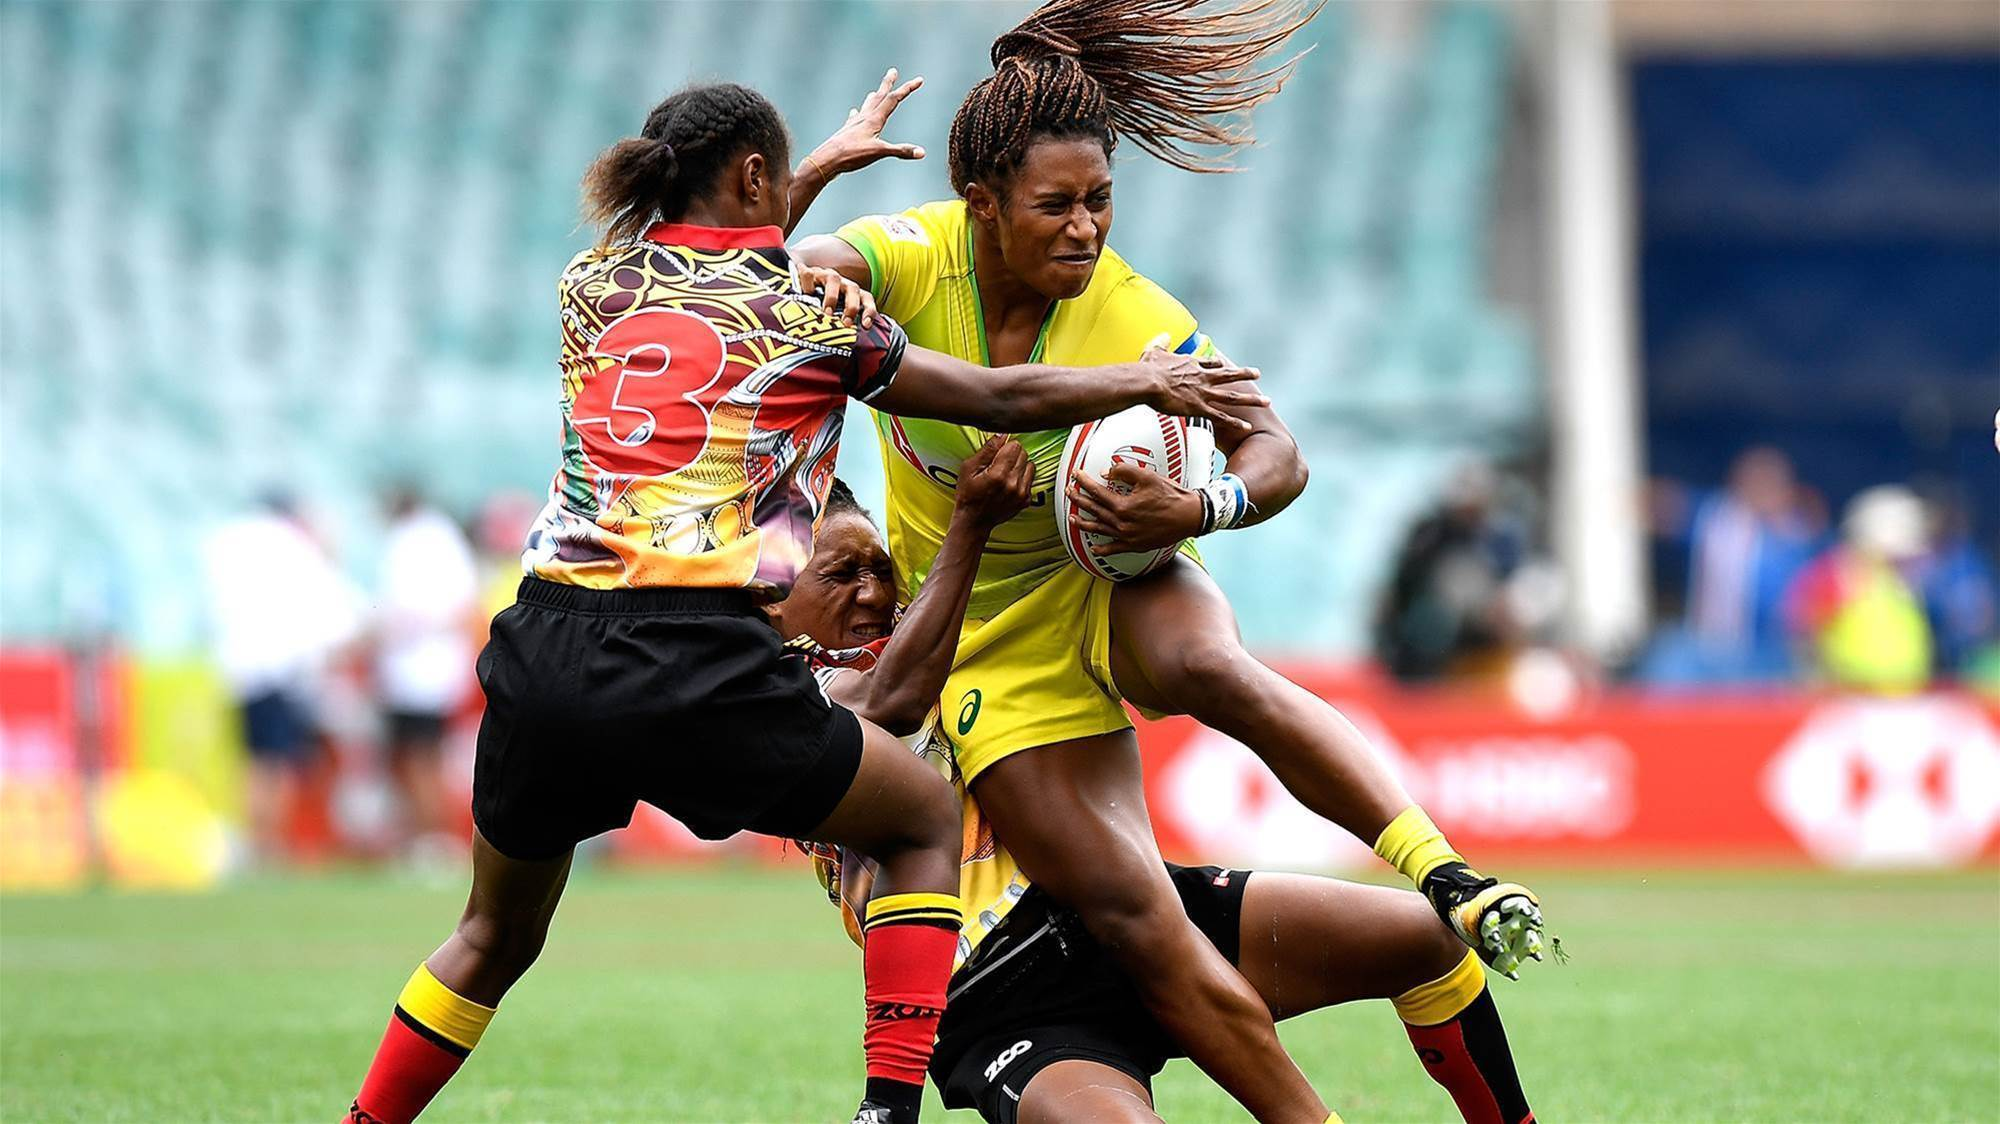 Aussies ready for tough opening match against PNG